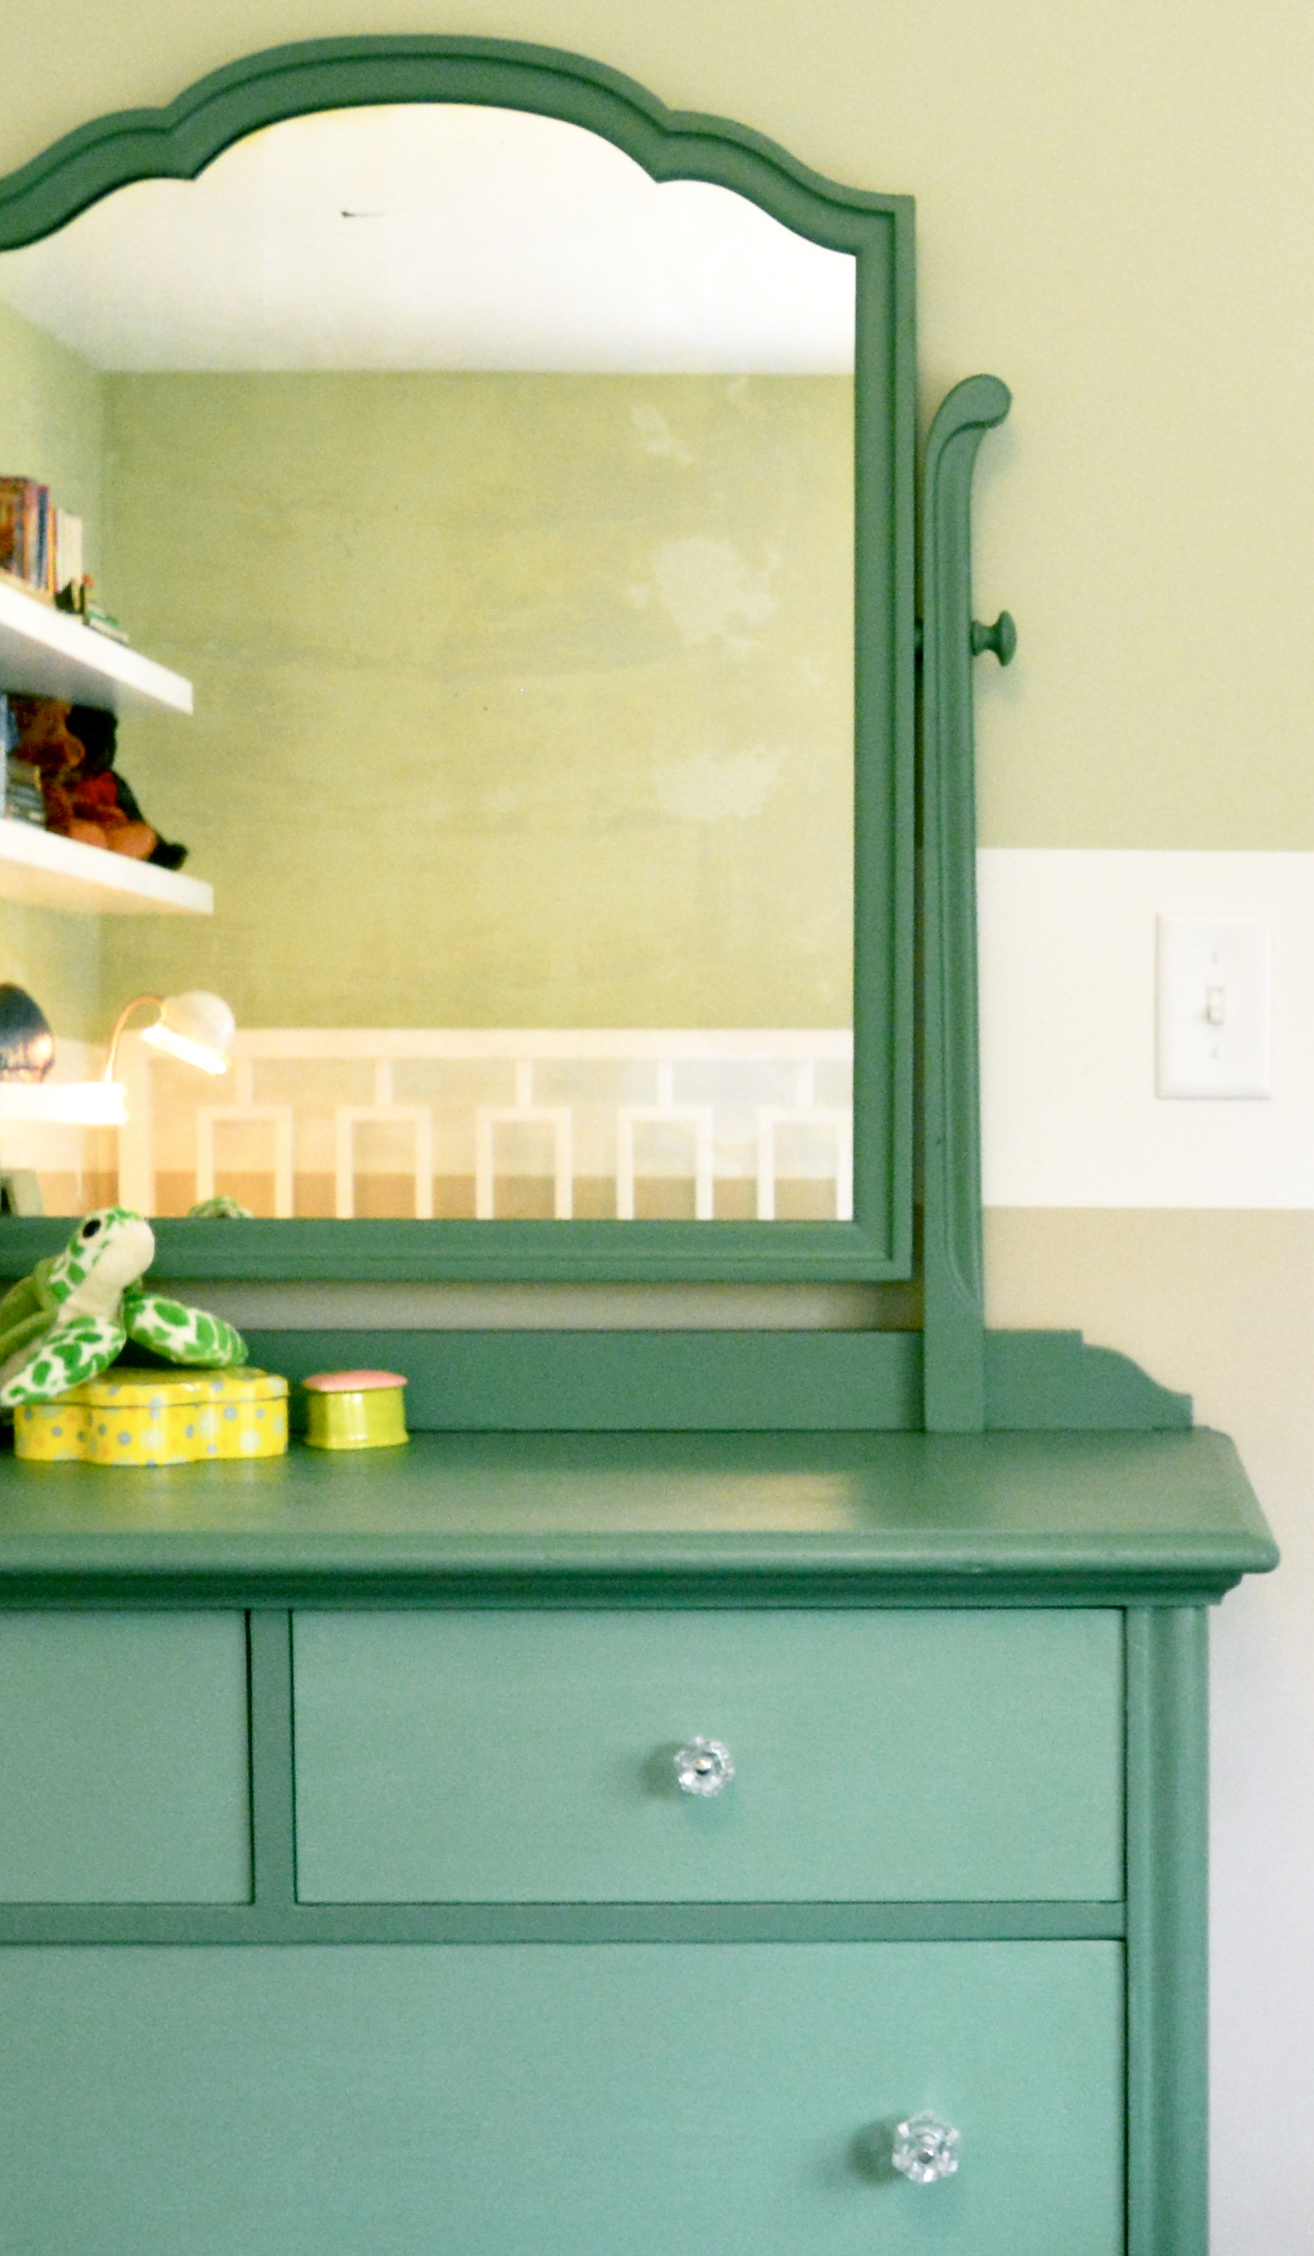 Yellow-toned Guilford Green on the wall, coexisting beautifully with neutral Grant Beige (HC-83) below it and a custom-painted blue-green dresser in front (Webster Green HC-130 and Lehigh Green HC-131).